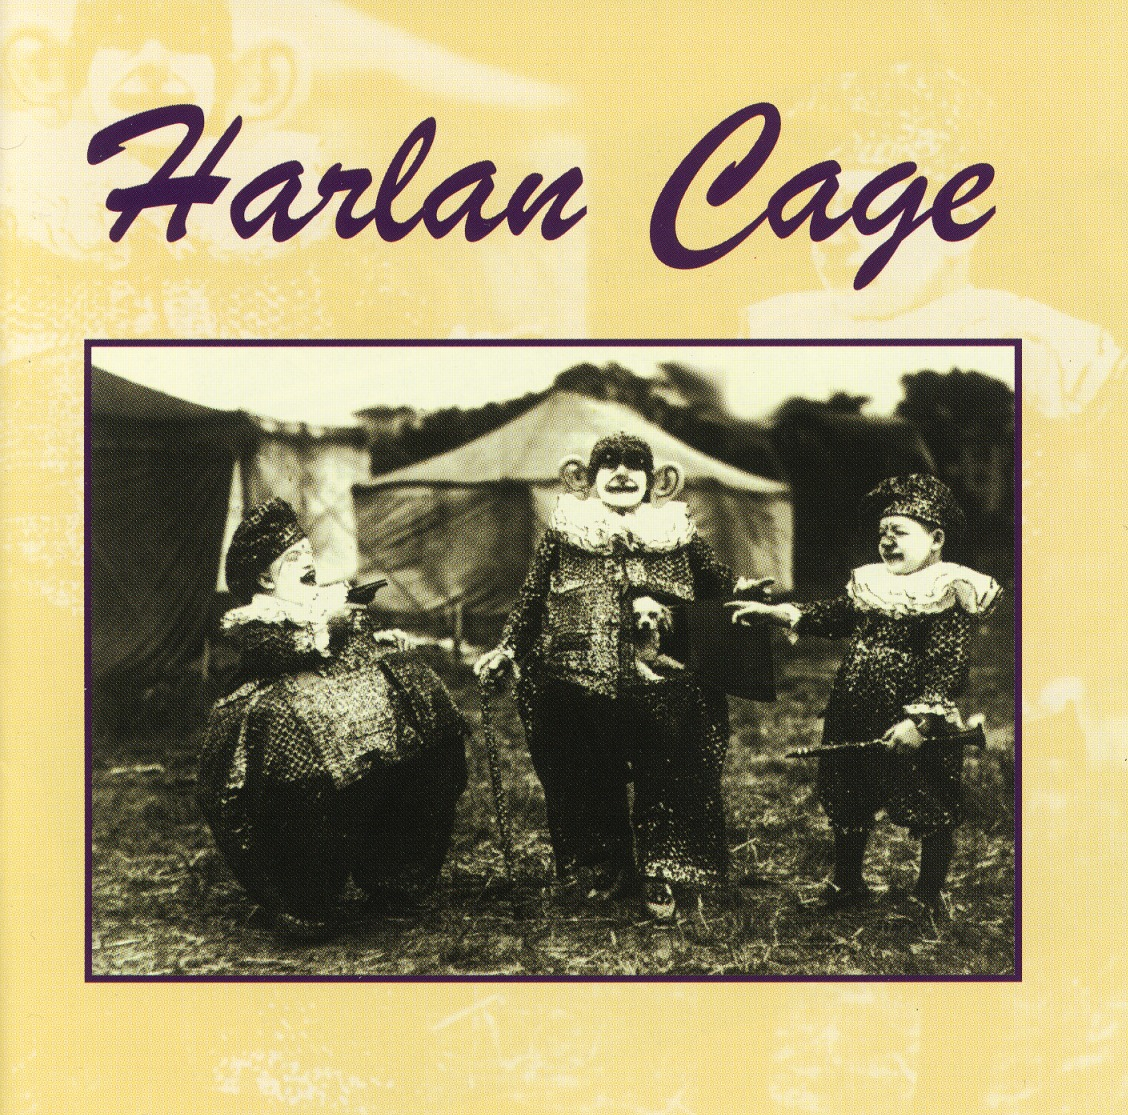 HARLAN CAGE (US) / Harlan Cage